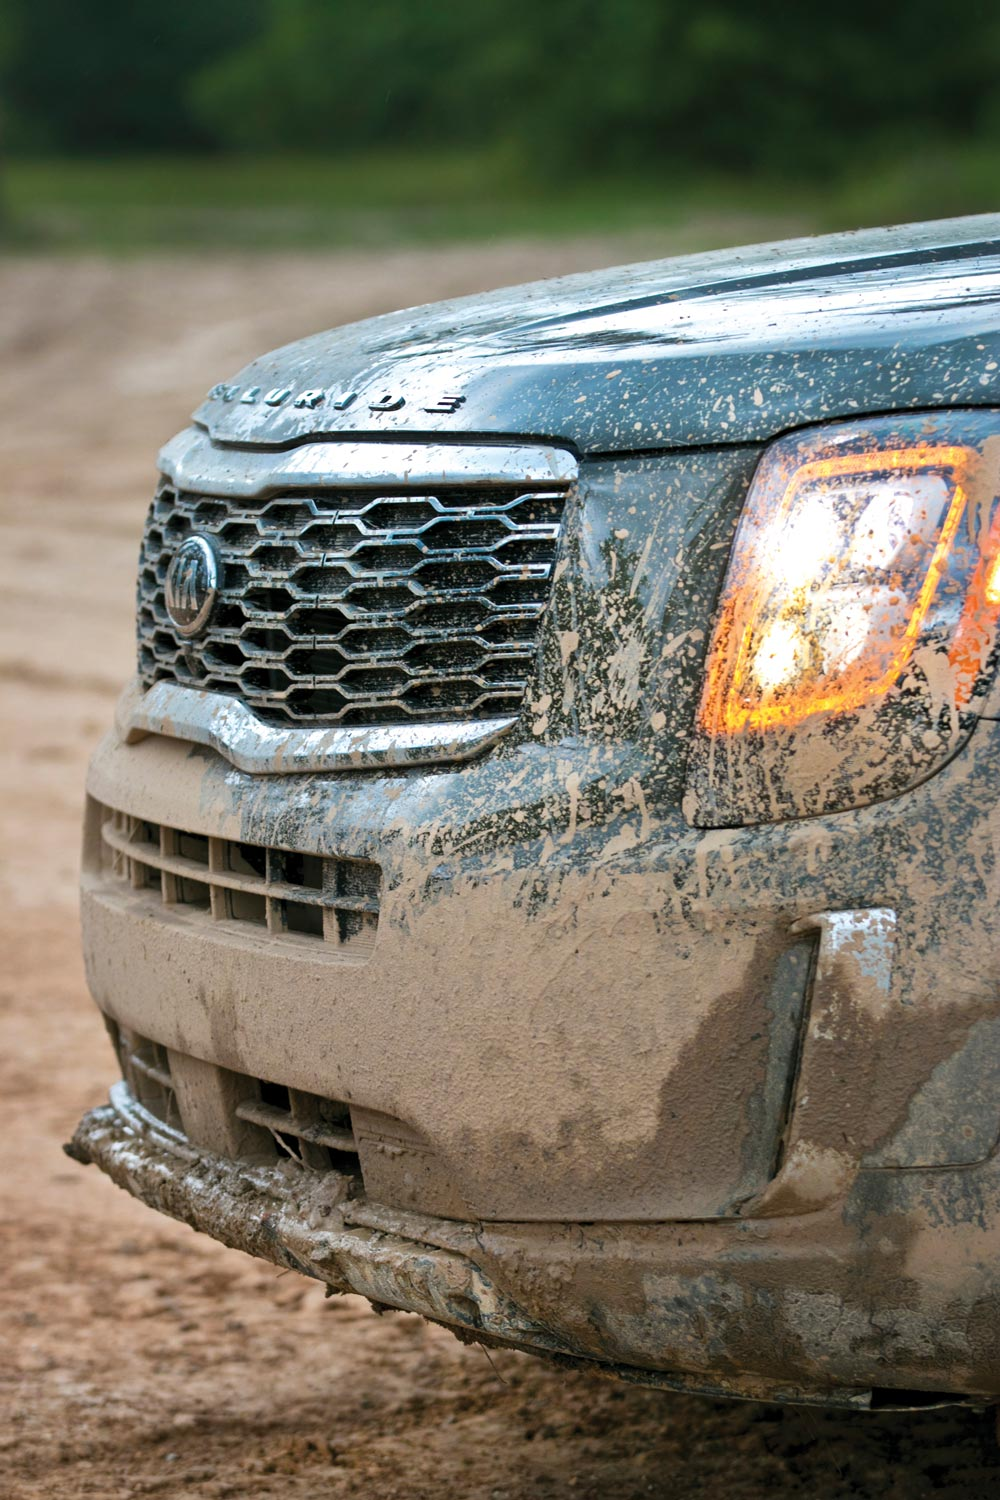 muddy front bumper and grille